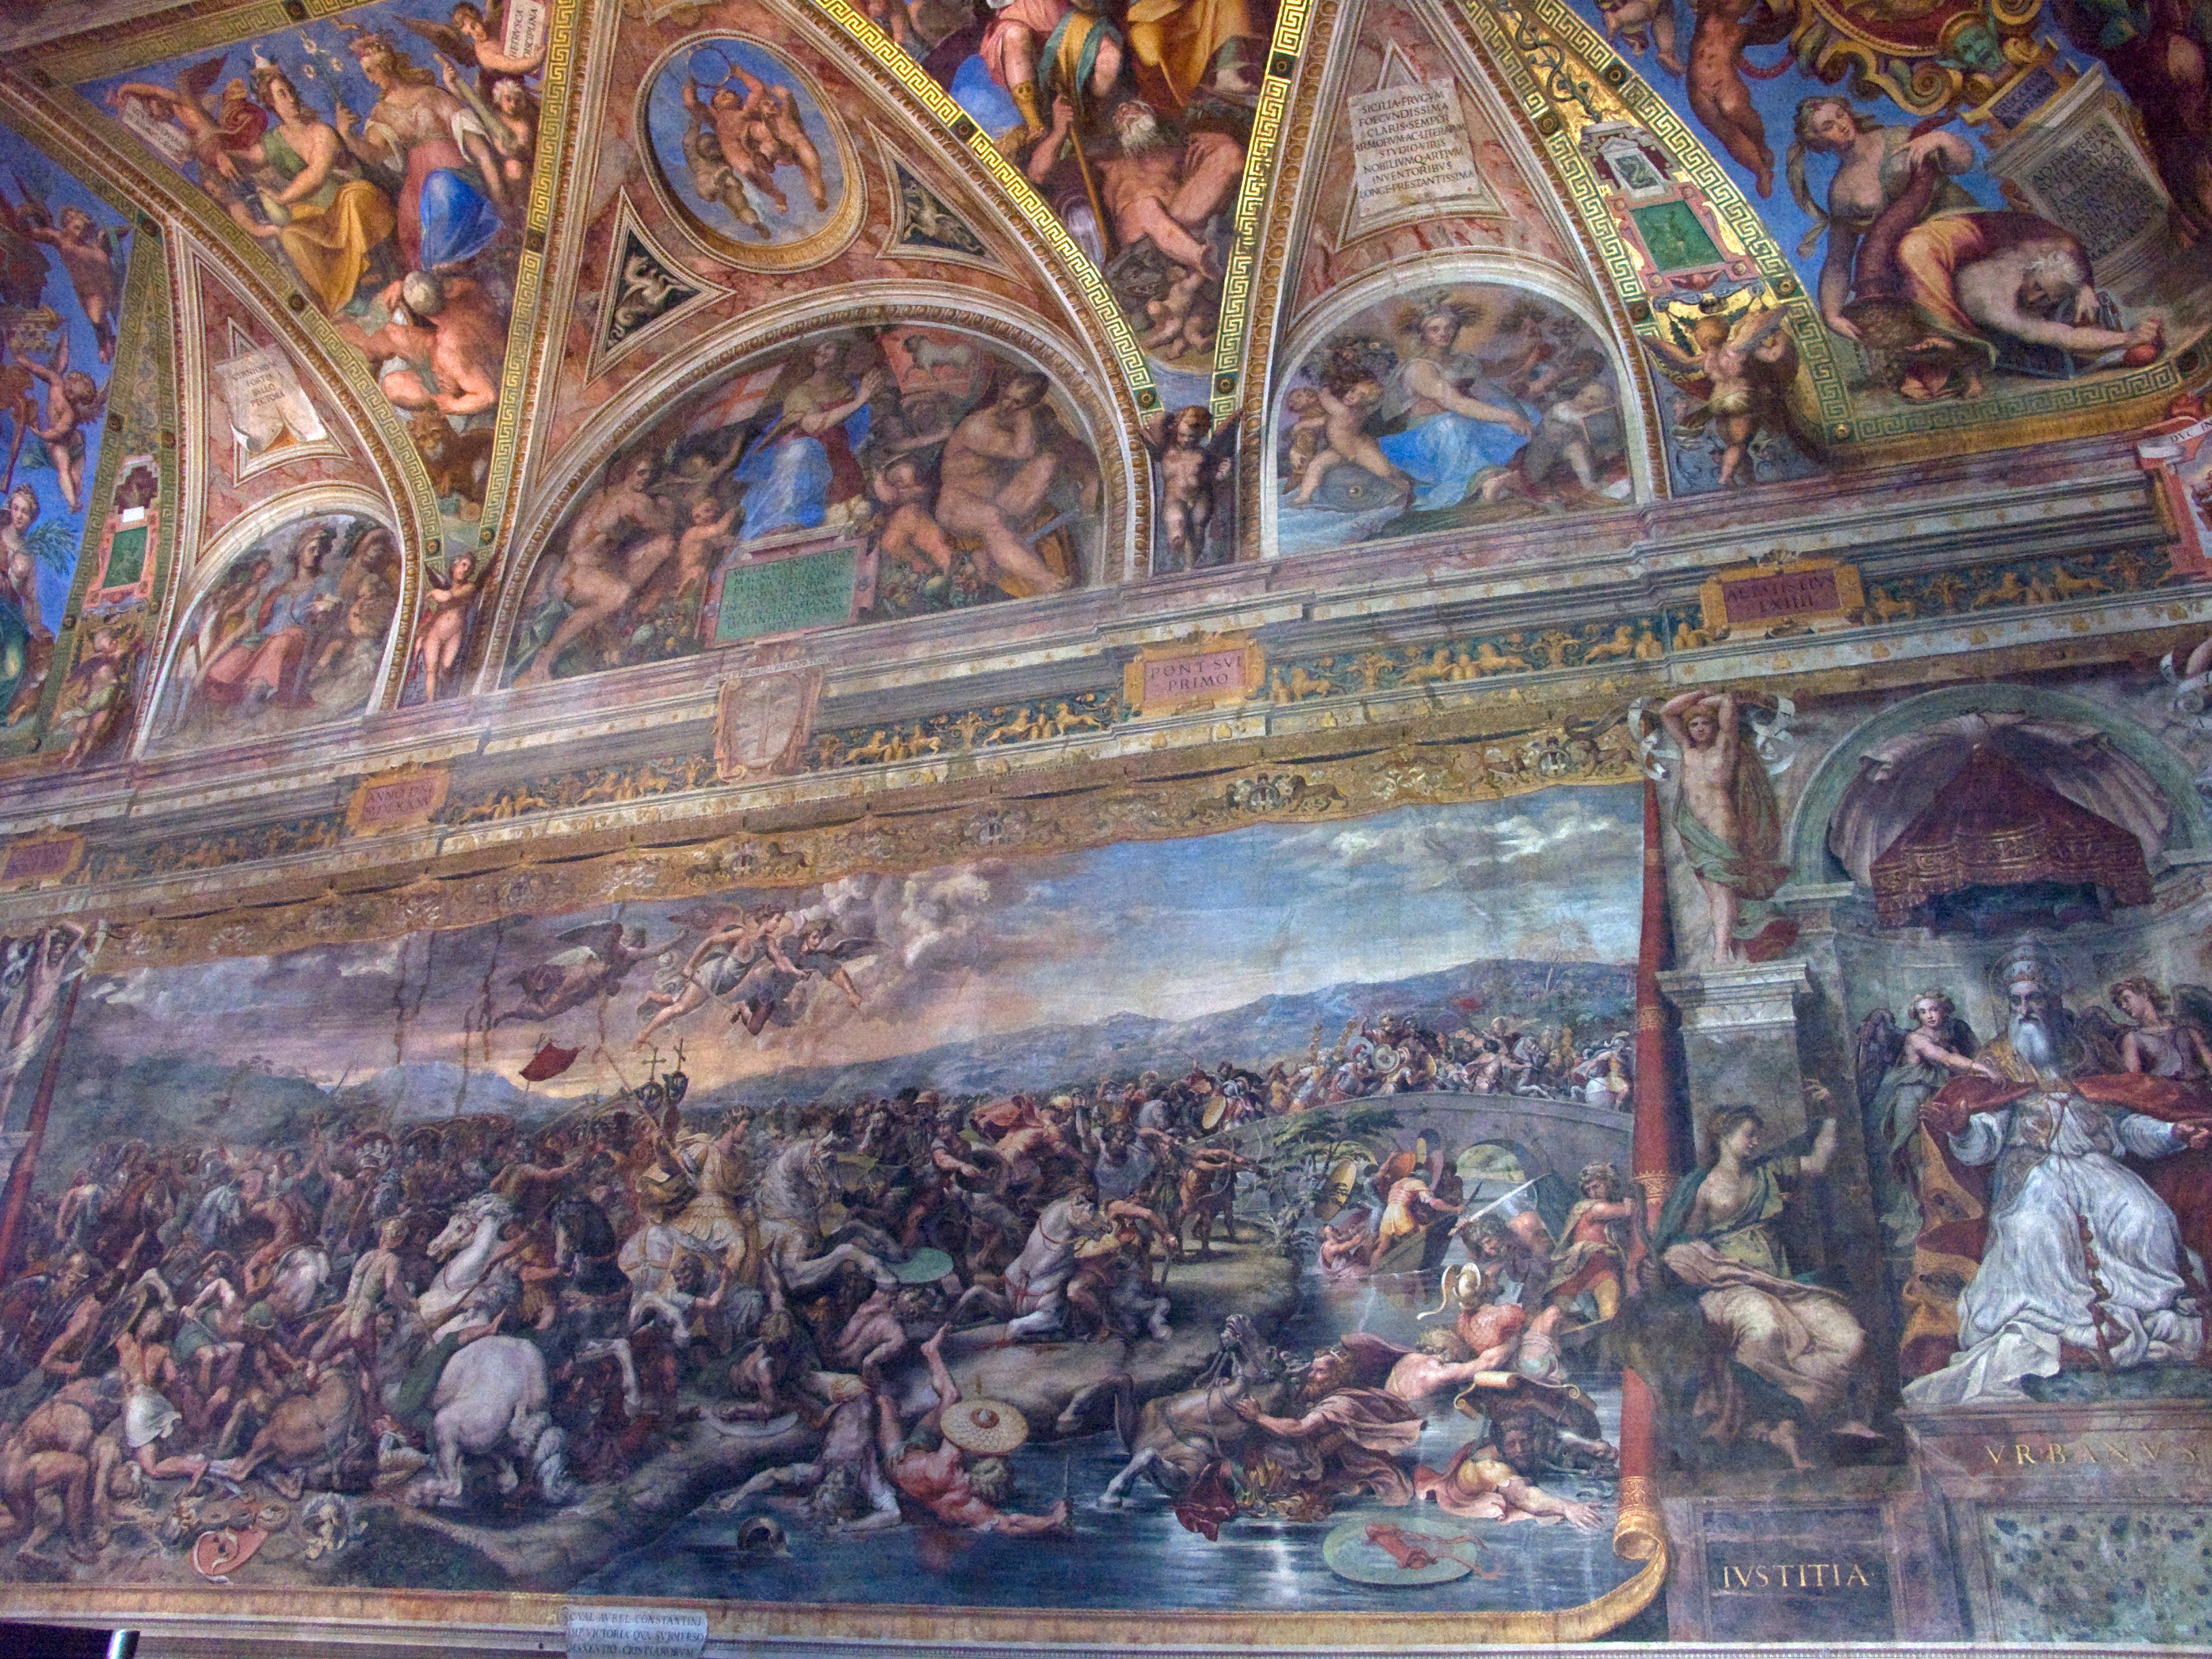 File:Vatican-Apostolic Palace-Battle of Milvian Bridge.jpg ...